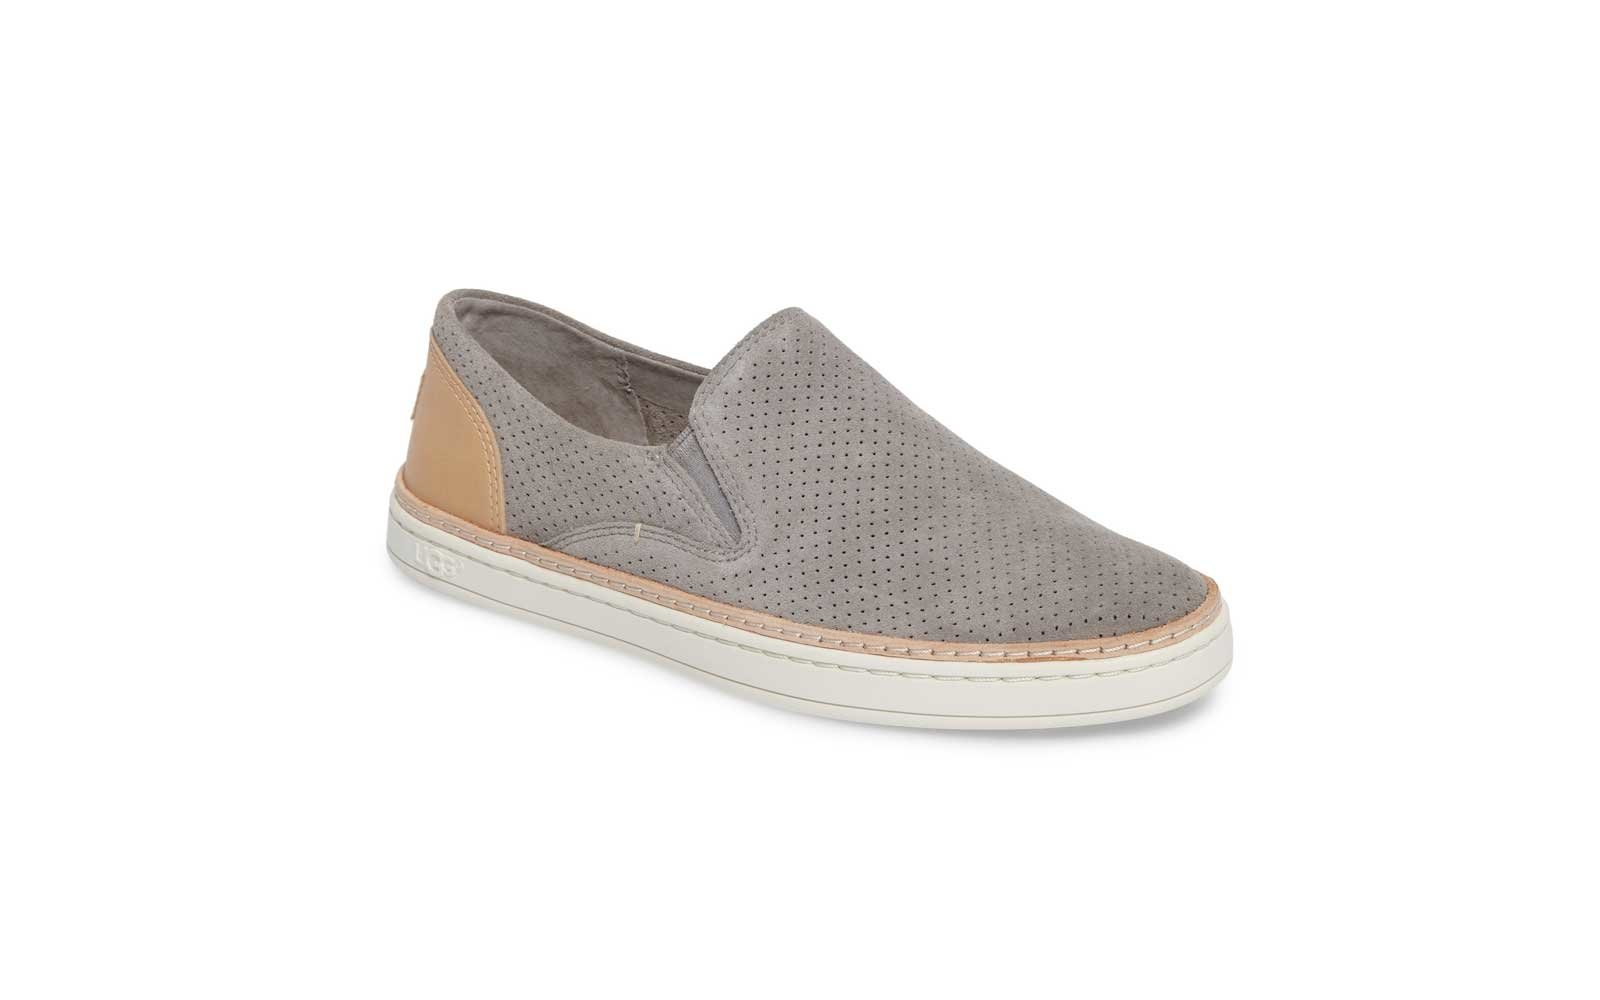 5e1e3bff33b Nordstrom s Half-yearly Sale Has So Many Comfy Sneakers for 40% Off ...